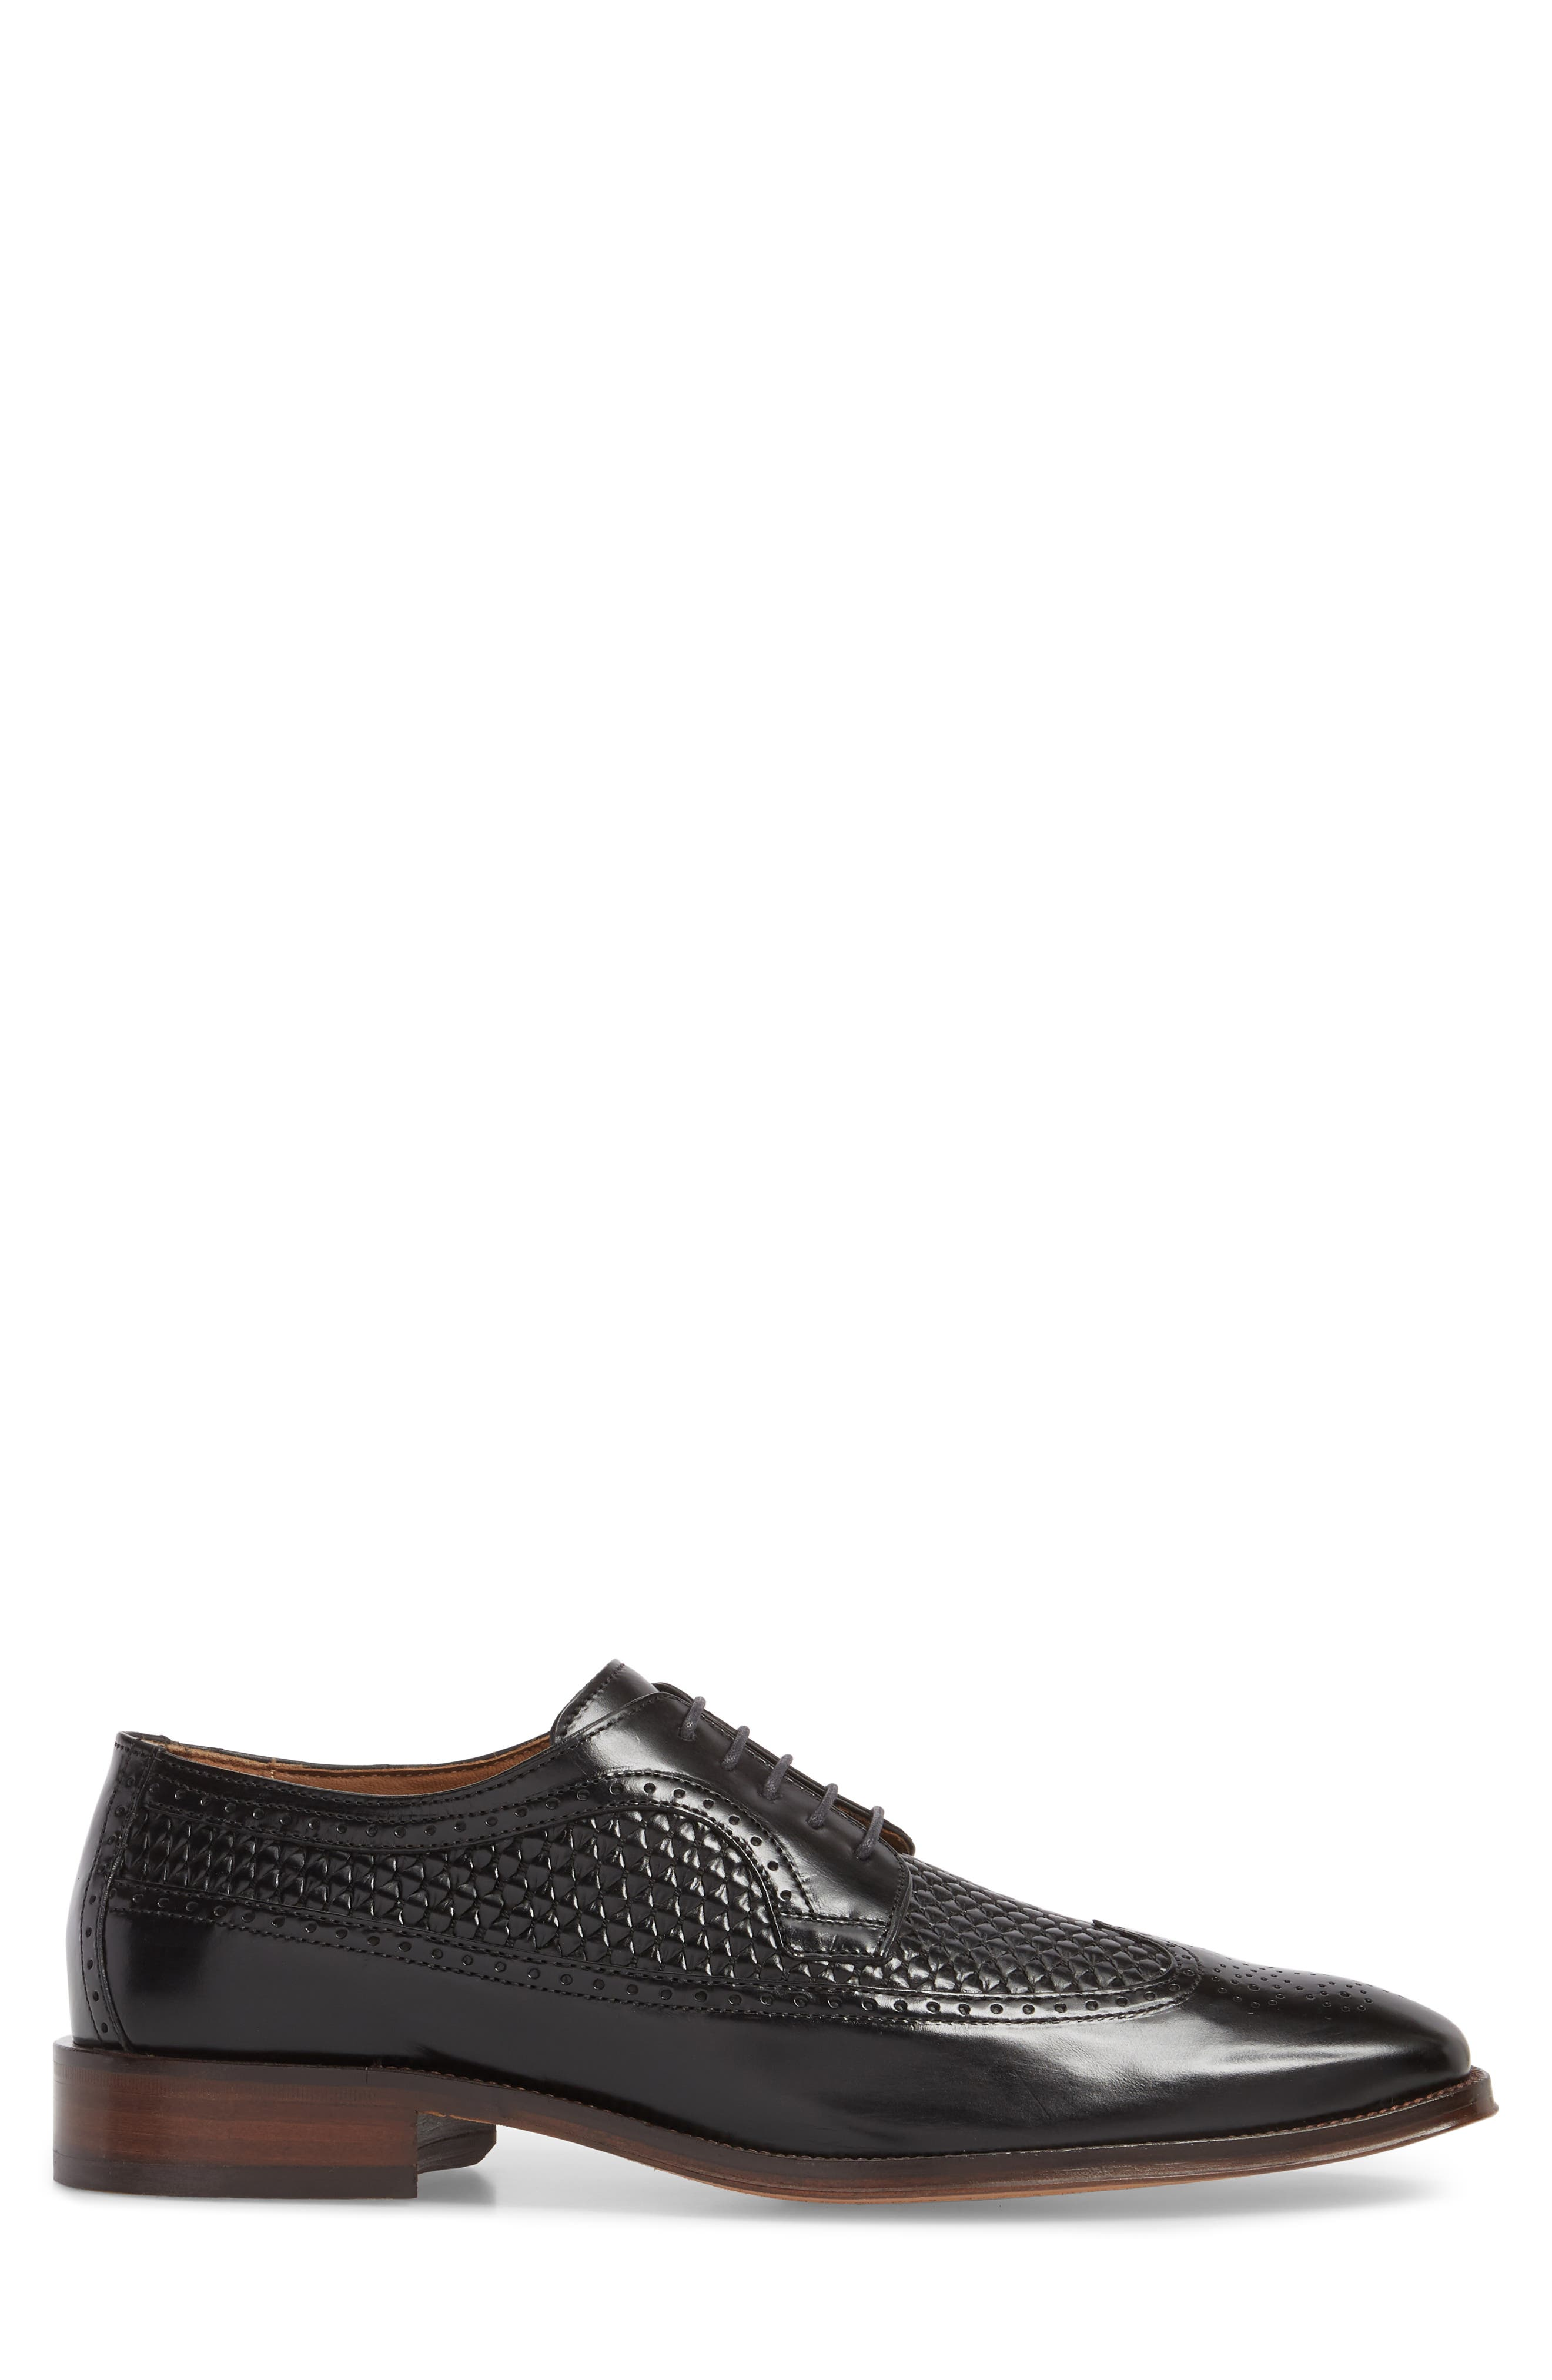 Boydstun Woven Wingtip Derby,                             Alternate thumbnail 3, color,                             Black Leather